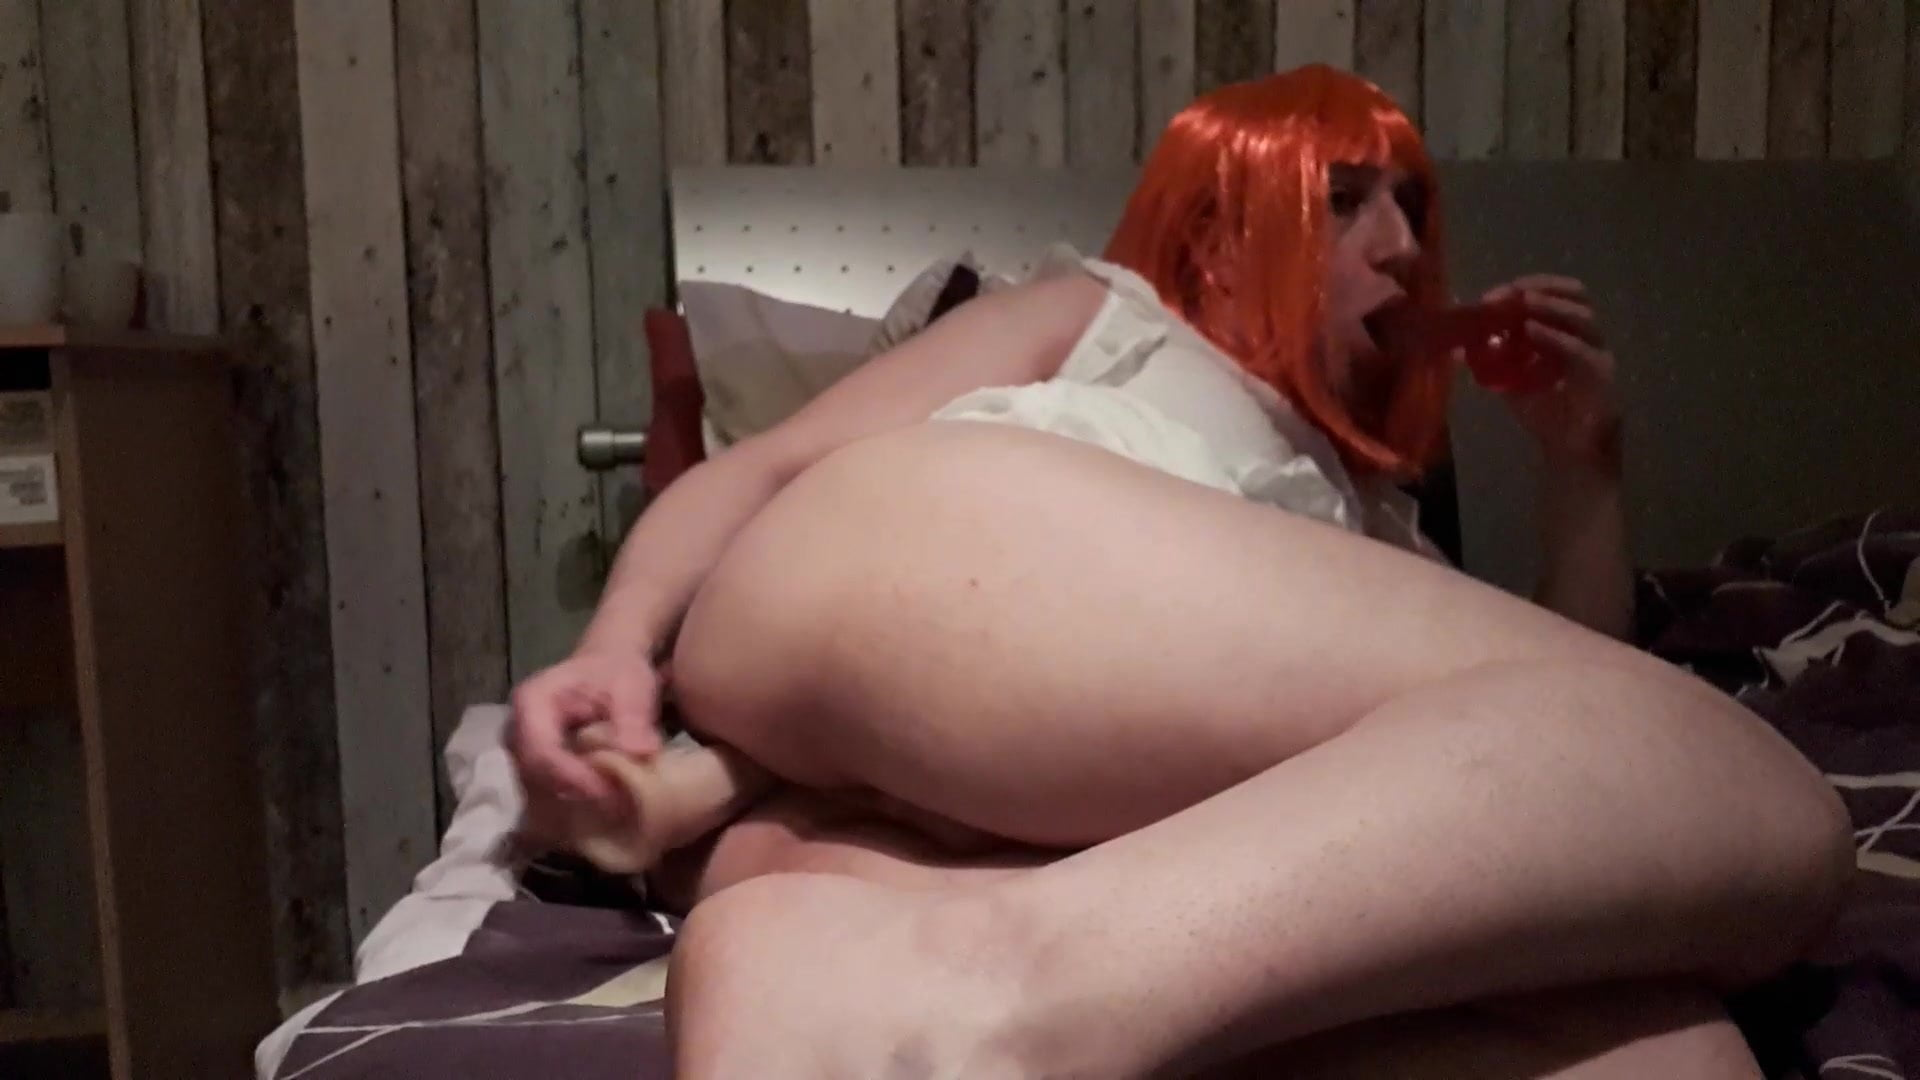 Sex archive First time nude retro trans